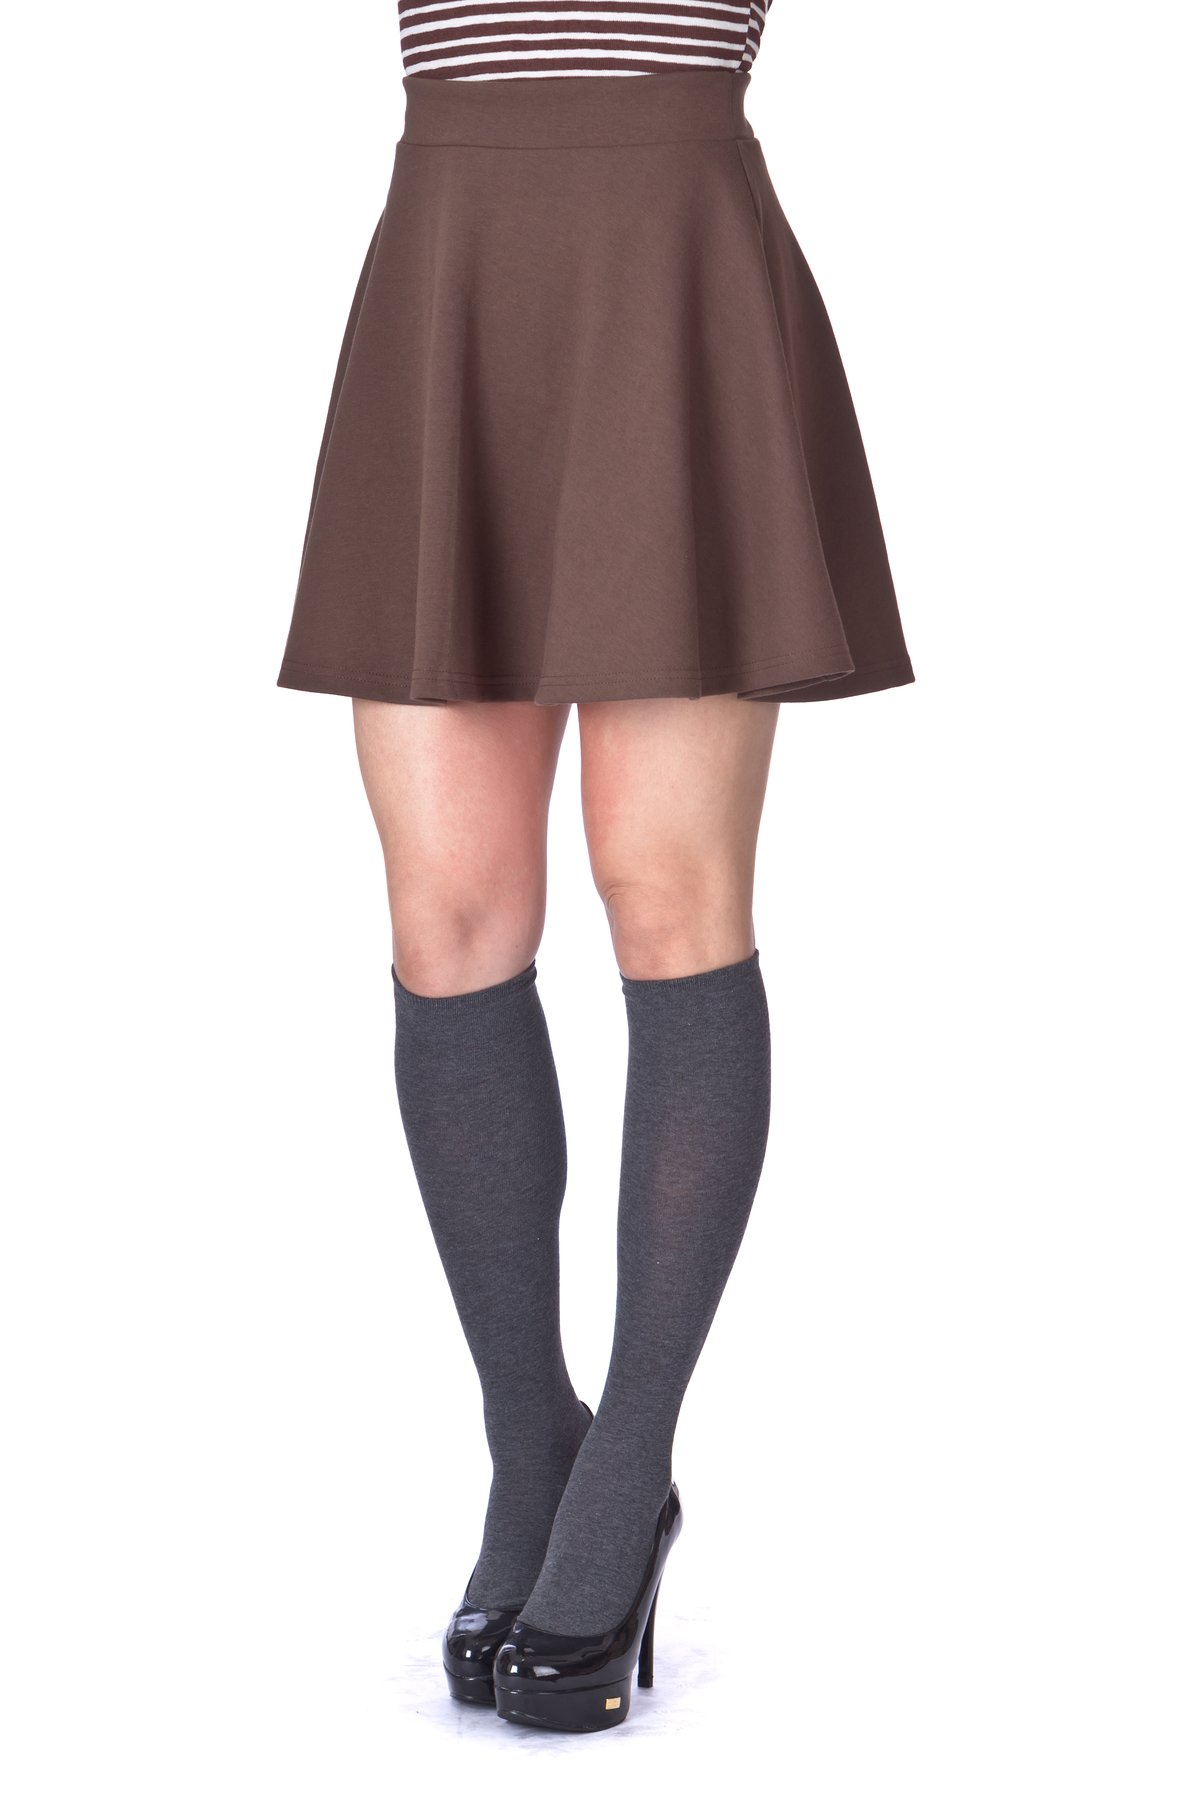 Basic Solid Stretchy Cotton High Waist A line Flared Skater Mini Skirt Brown 6